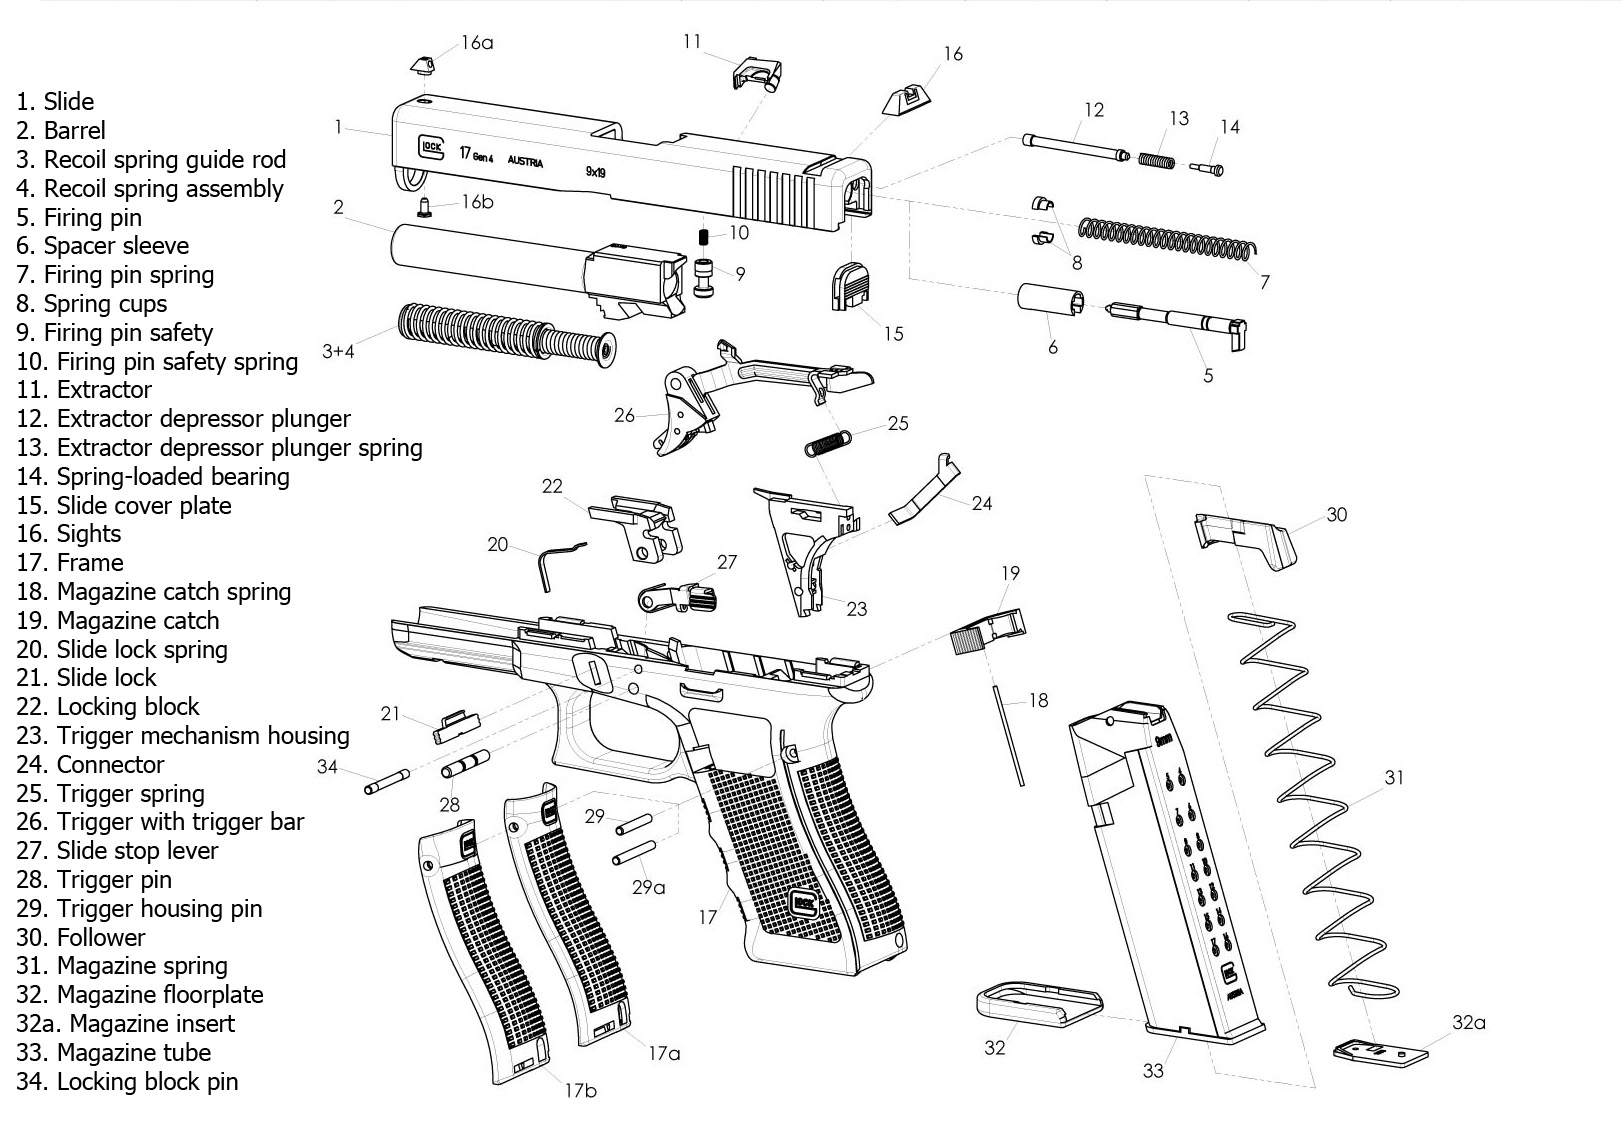 glock 17 diagram